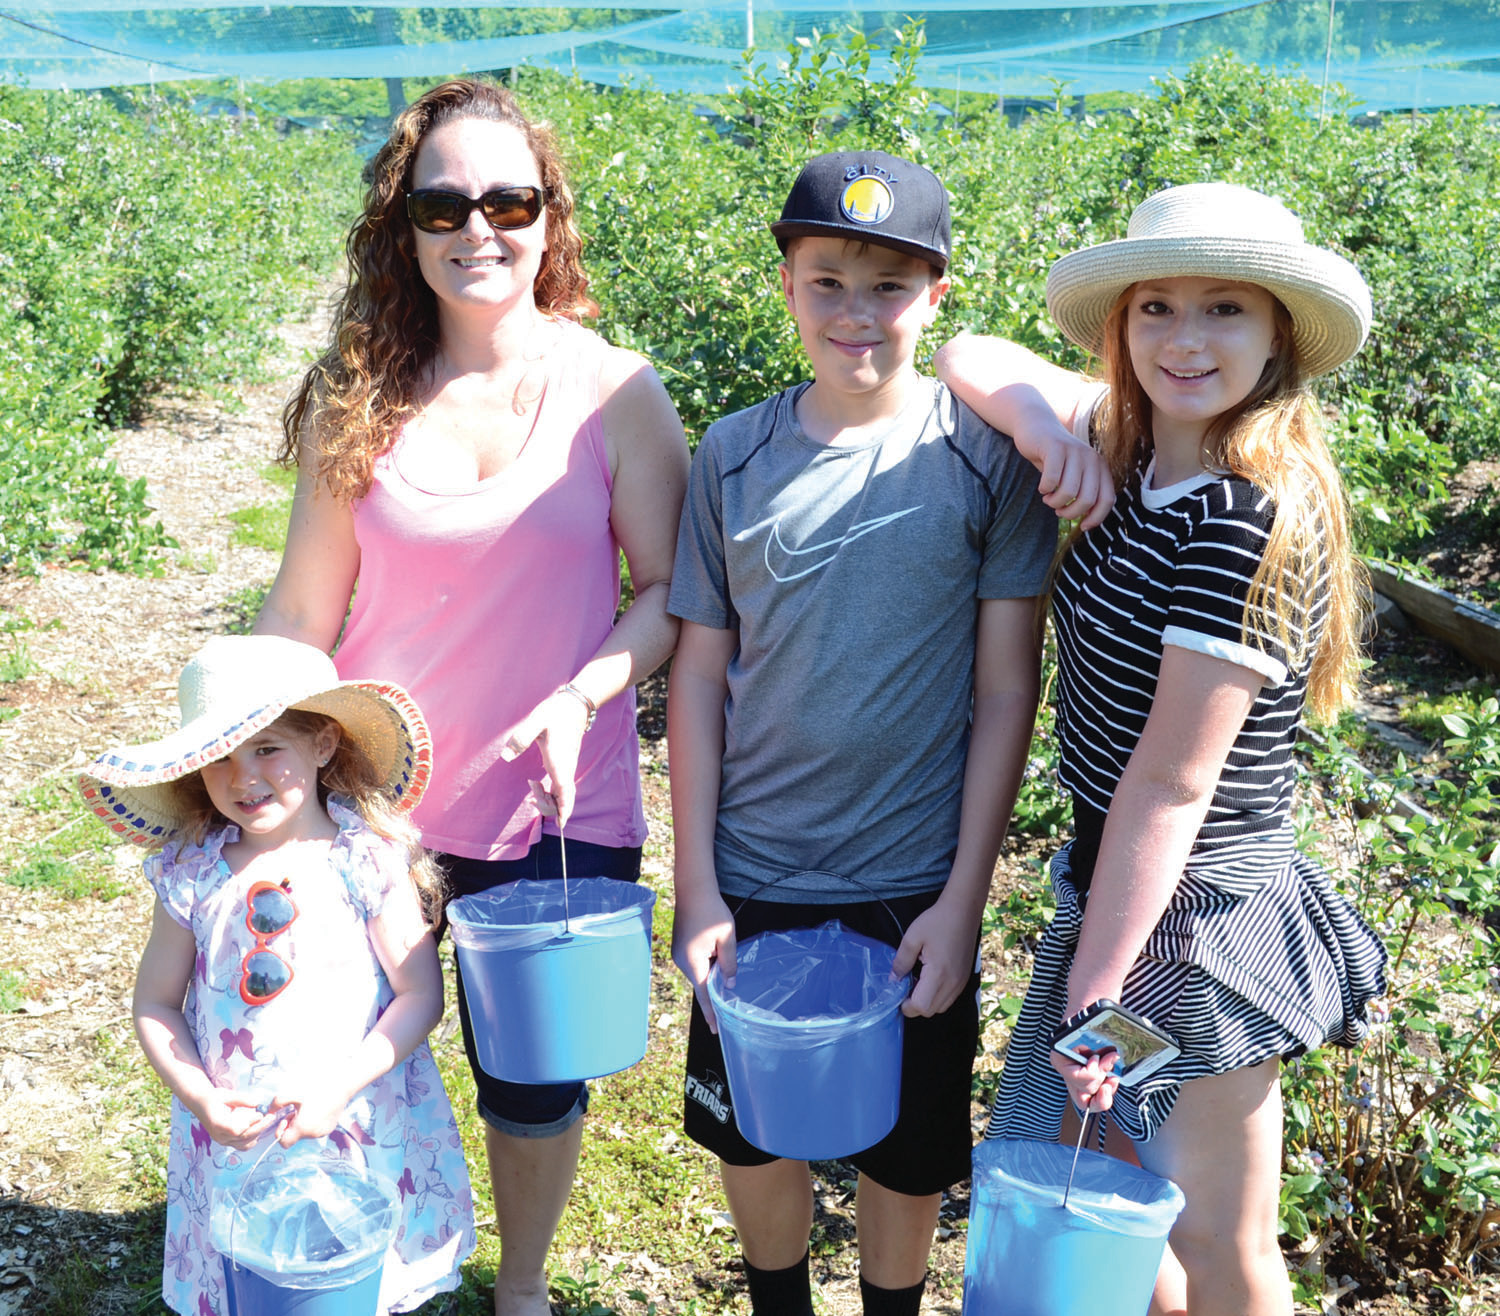 FAMILY OUTING: Aundrea Jemma, Bobbie-Jo Jemma, Justin Bianchi and Janelle Bianchi enjoying a beautiful day picking berries.